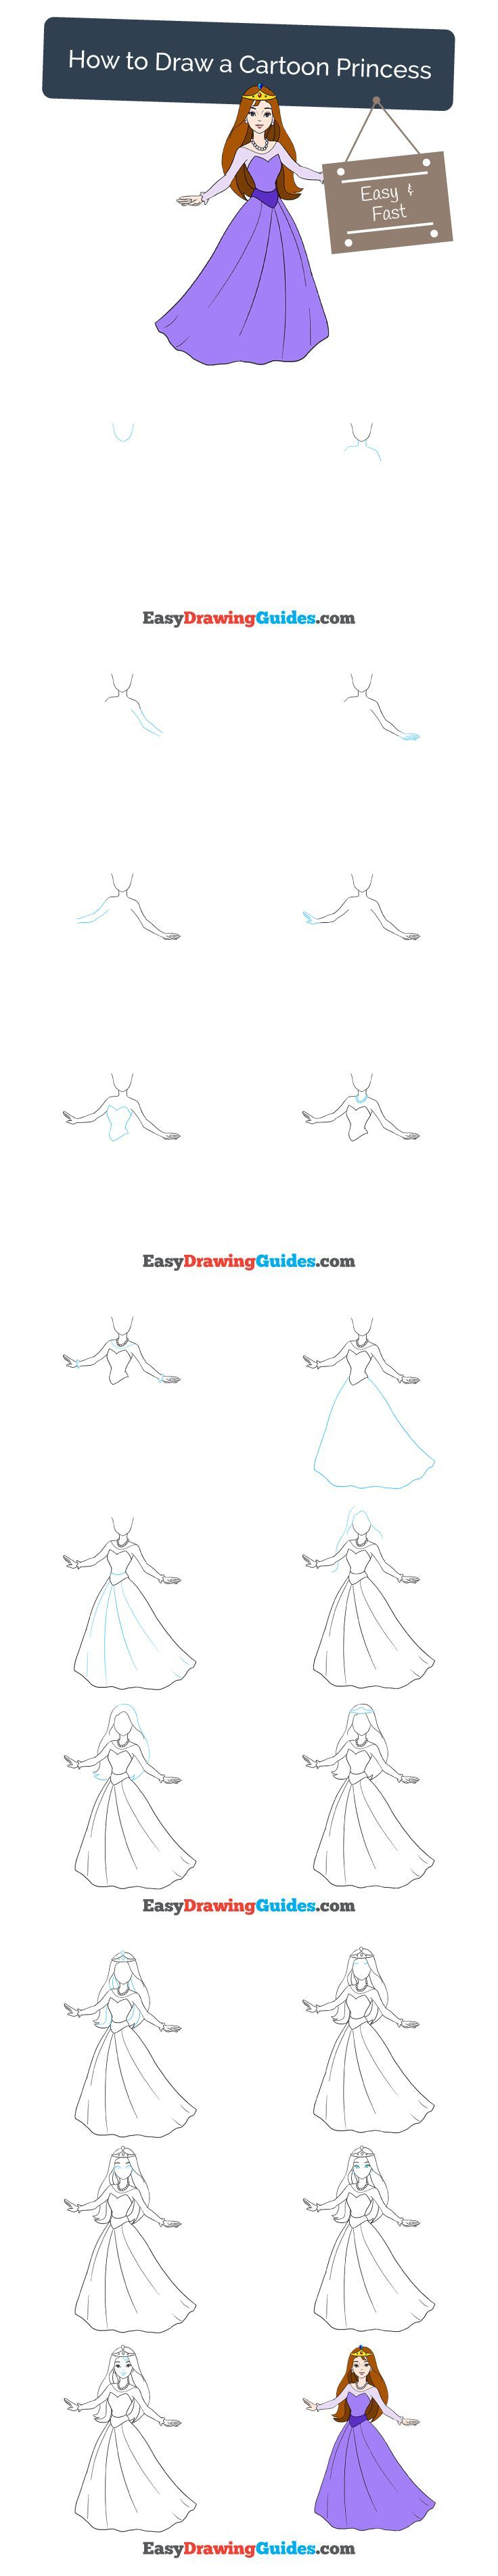 how to draw a princess step by step easy